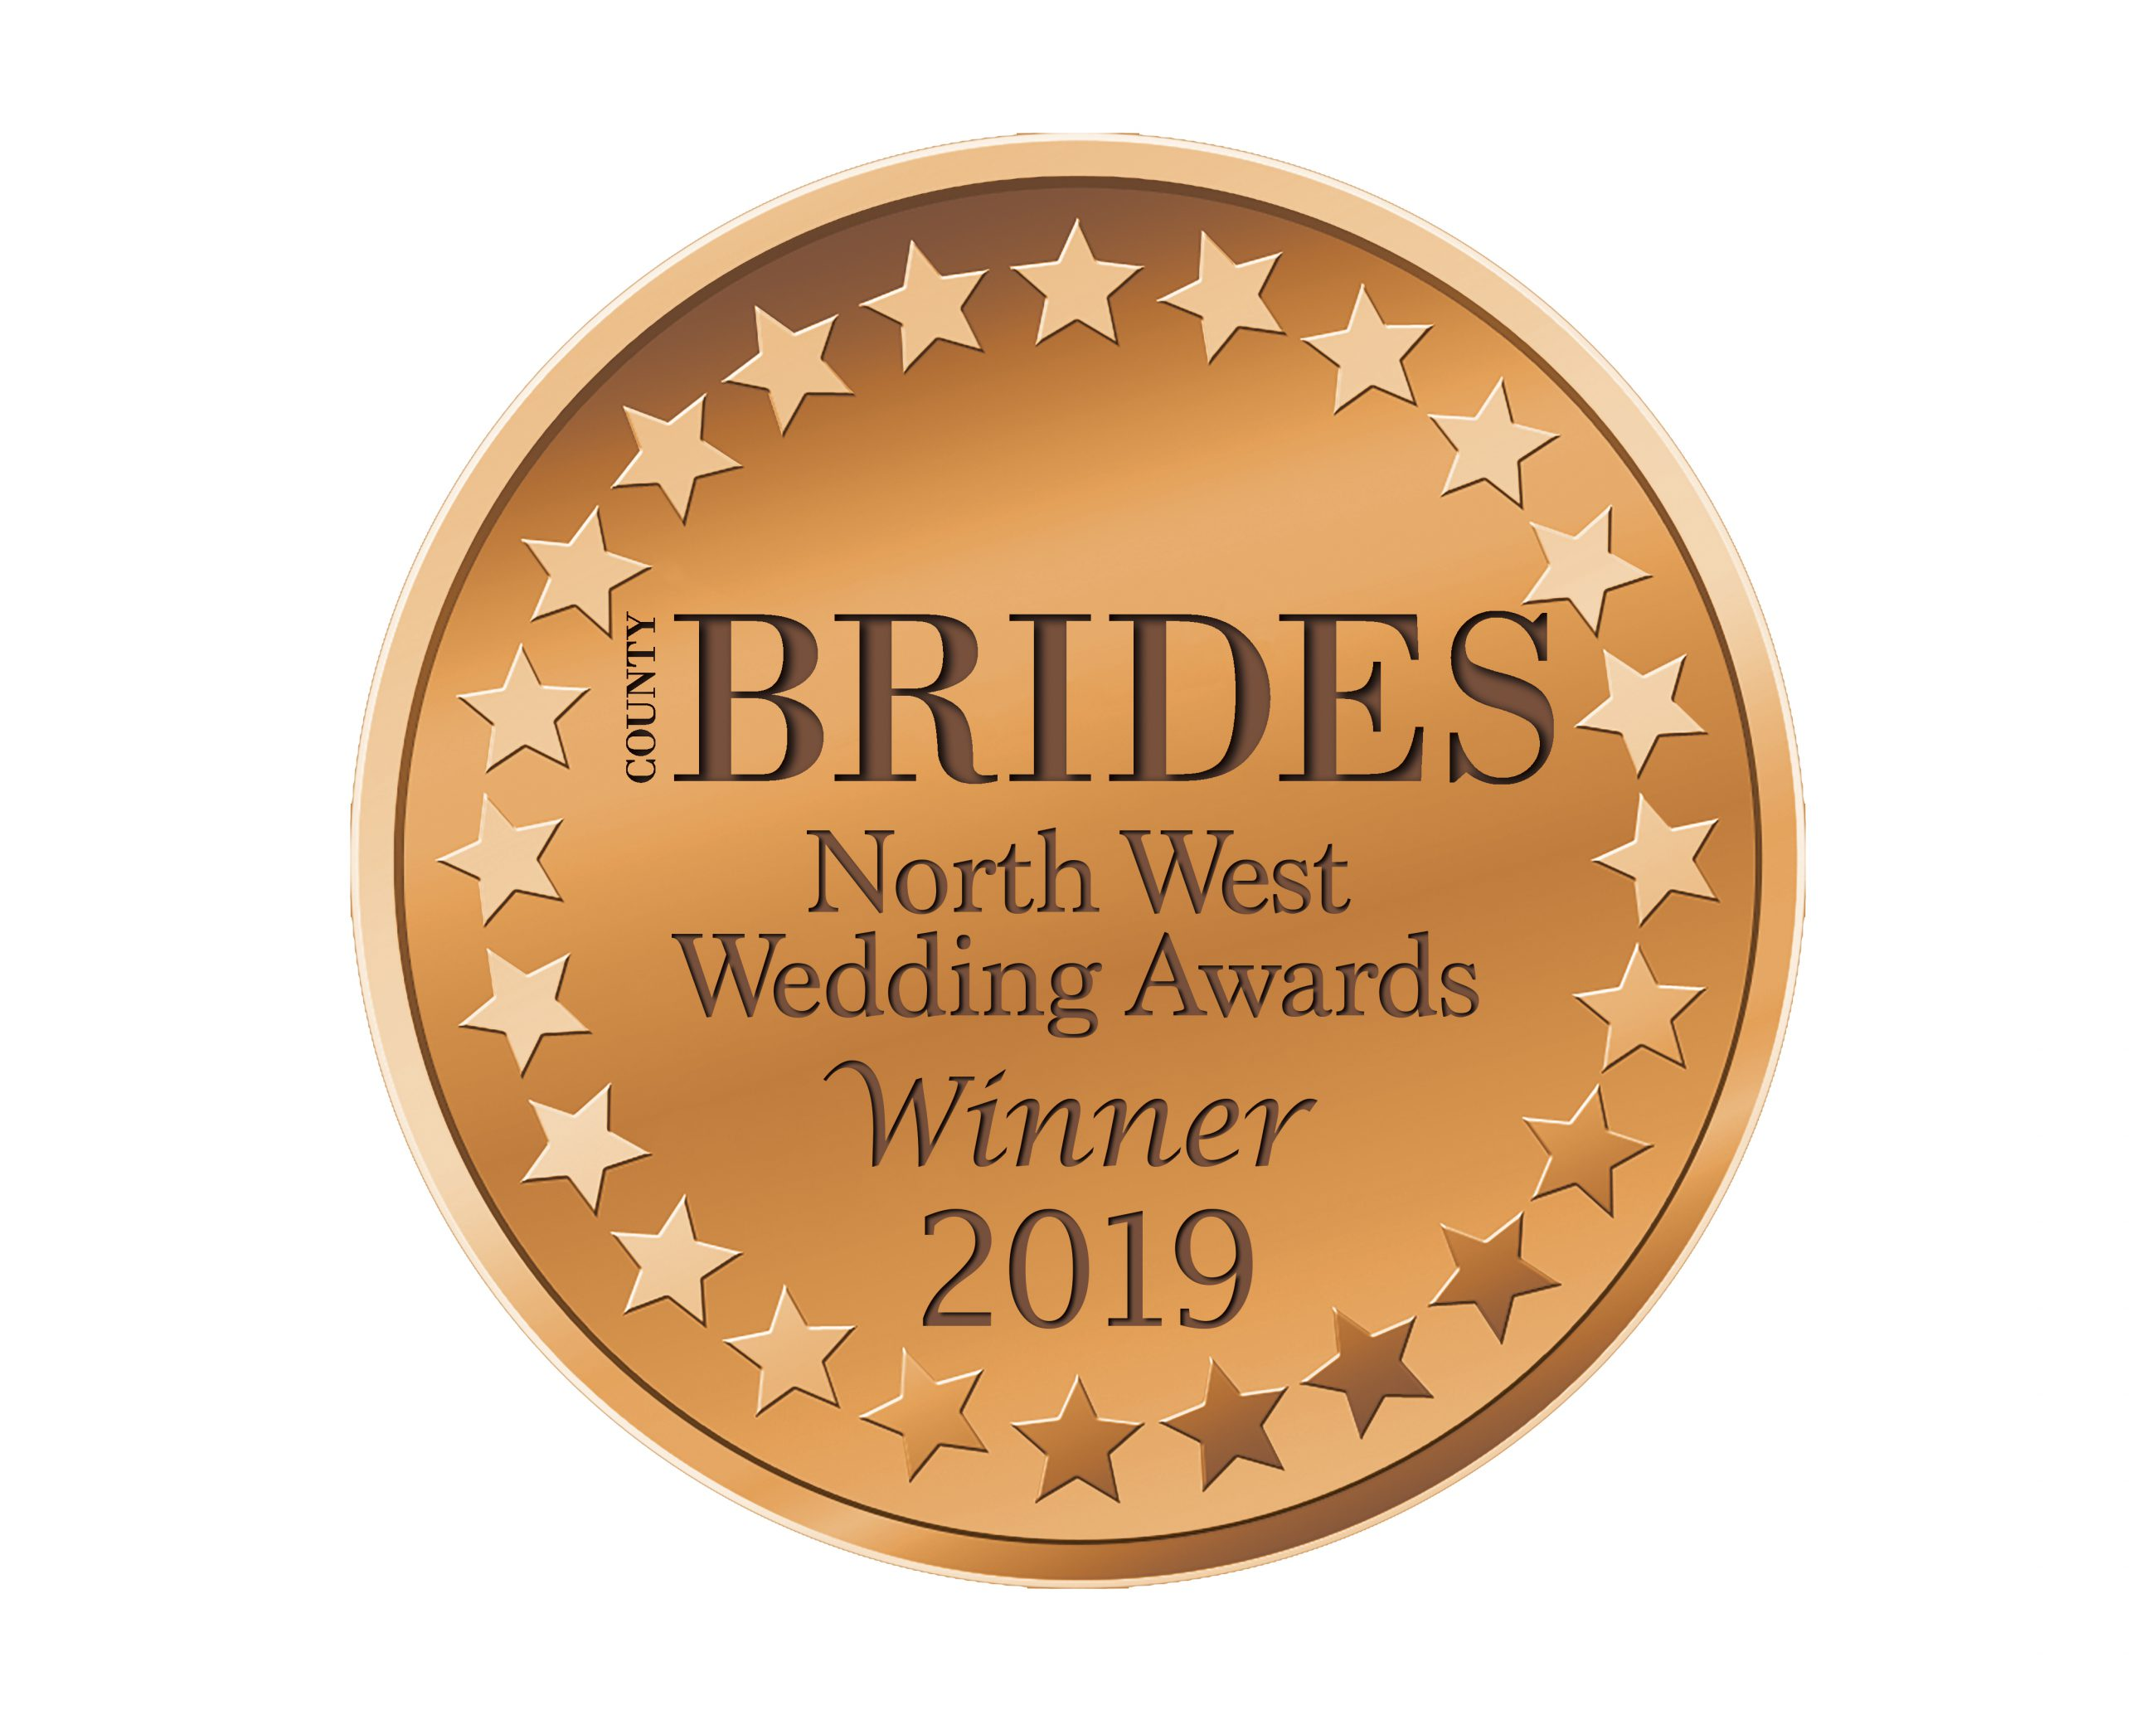 North West Wedding Awards 2019